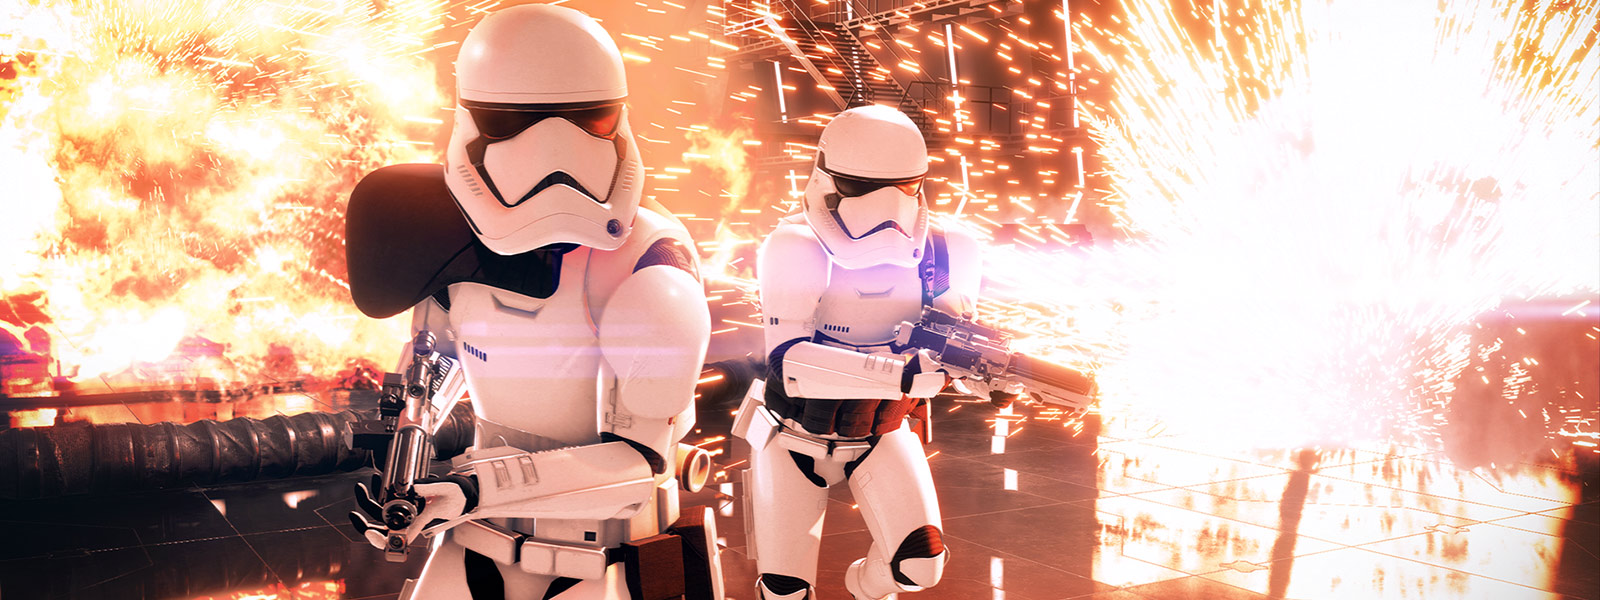 Front view of two Stormtroopers running through a base blowing up with multiple explosions